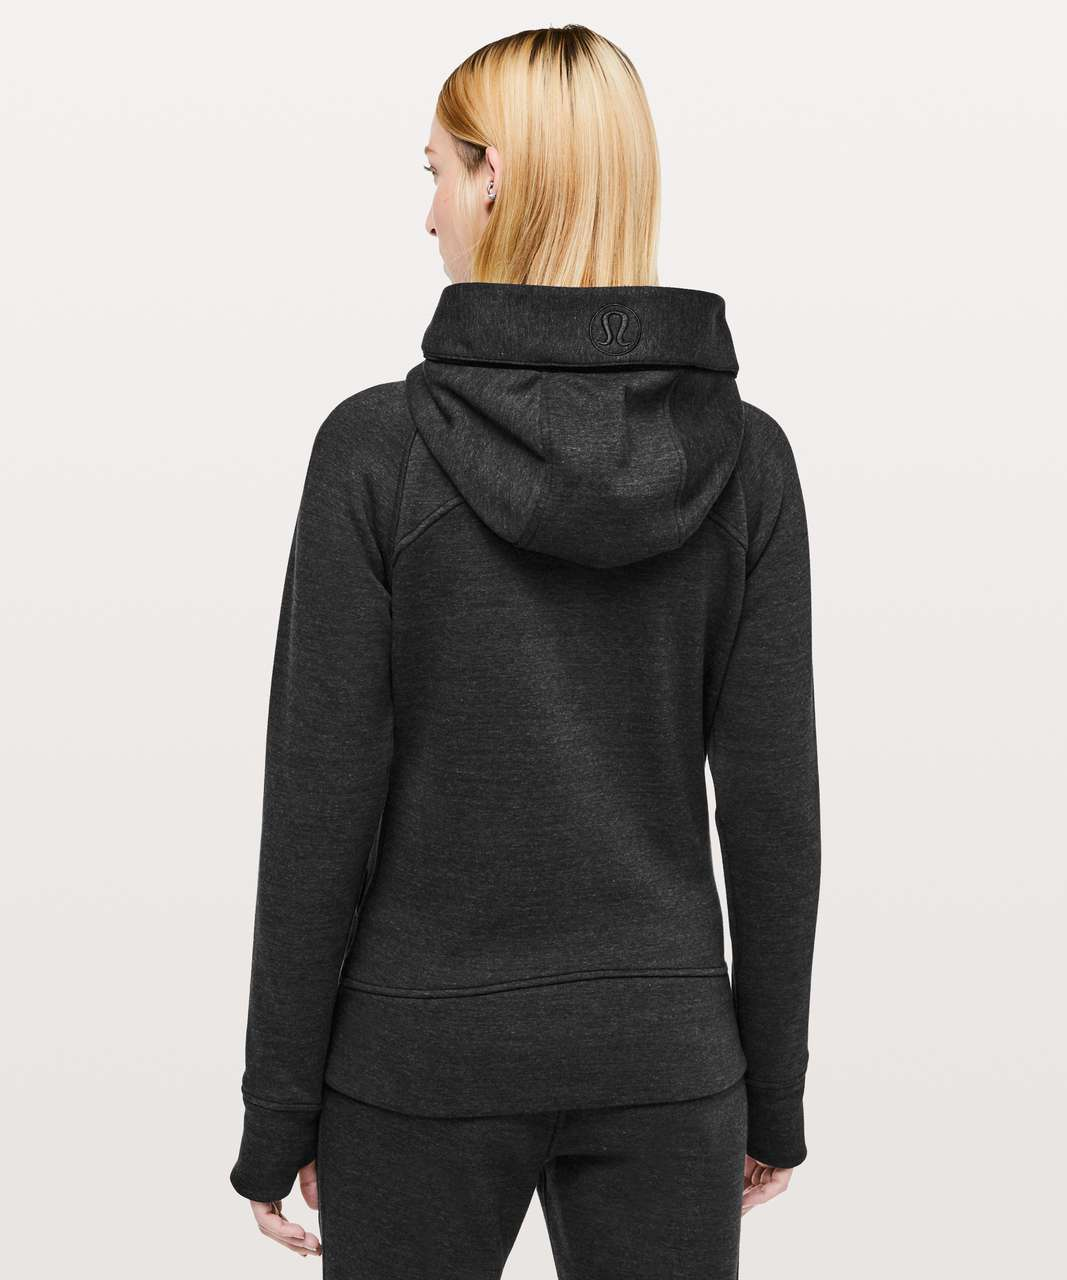 Lululemon Scuba Hoodie *Plush - Heathered Core Black / Black